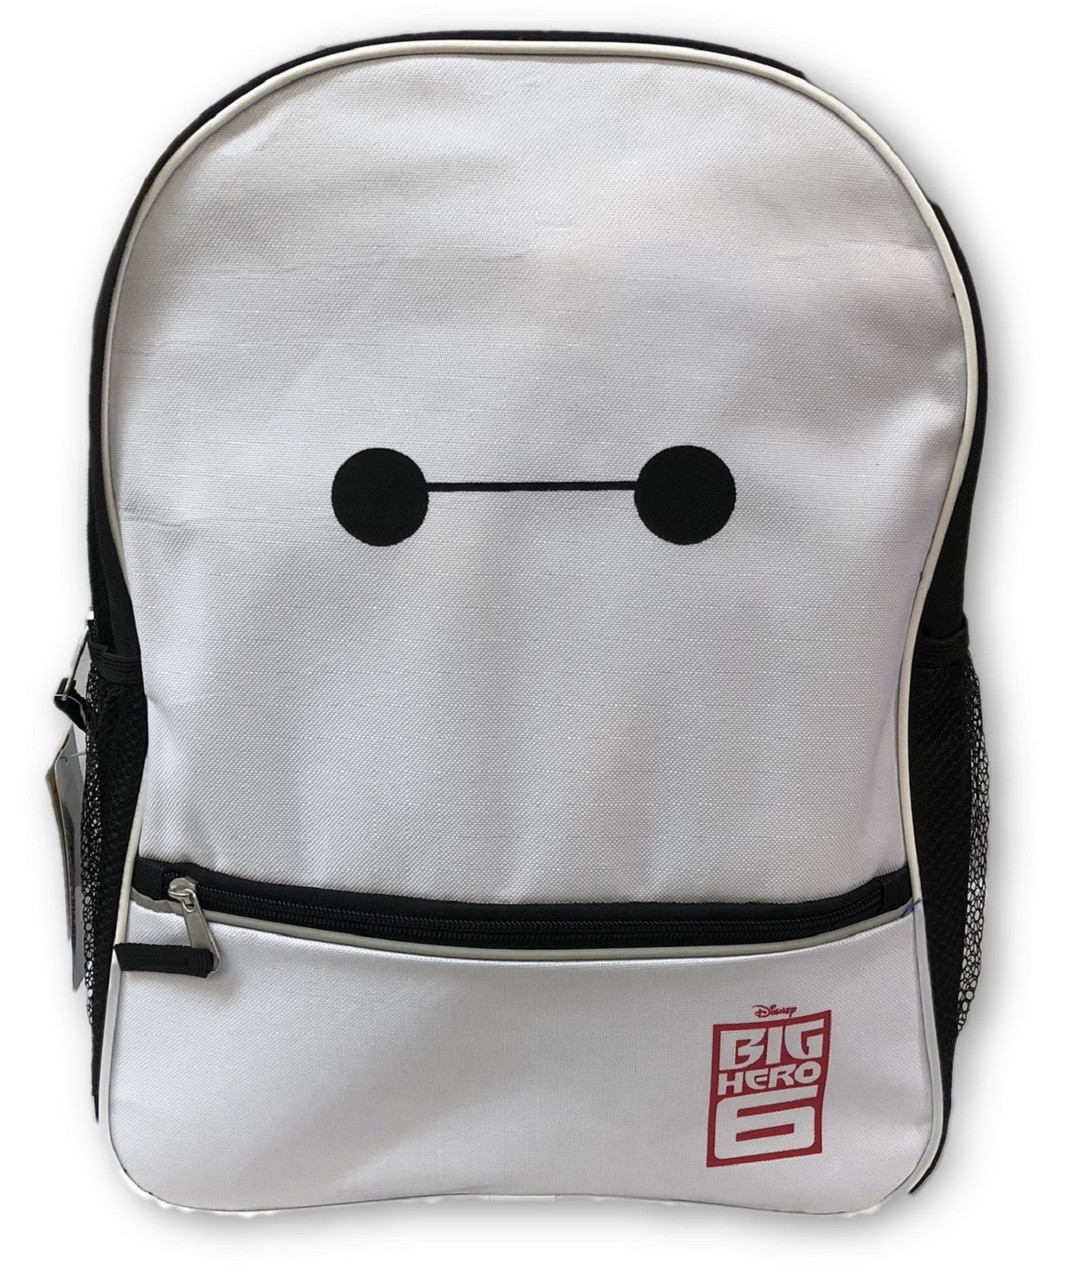 Backpack - Big Hero 6 - Large 16 Inch - White Baymax